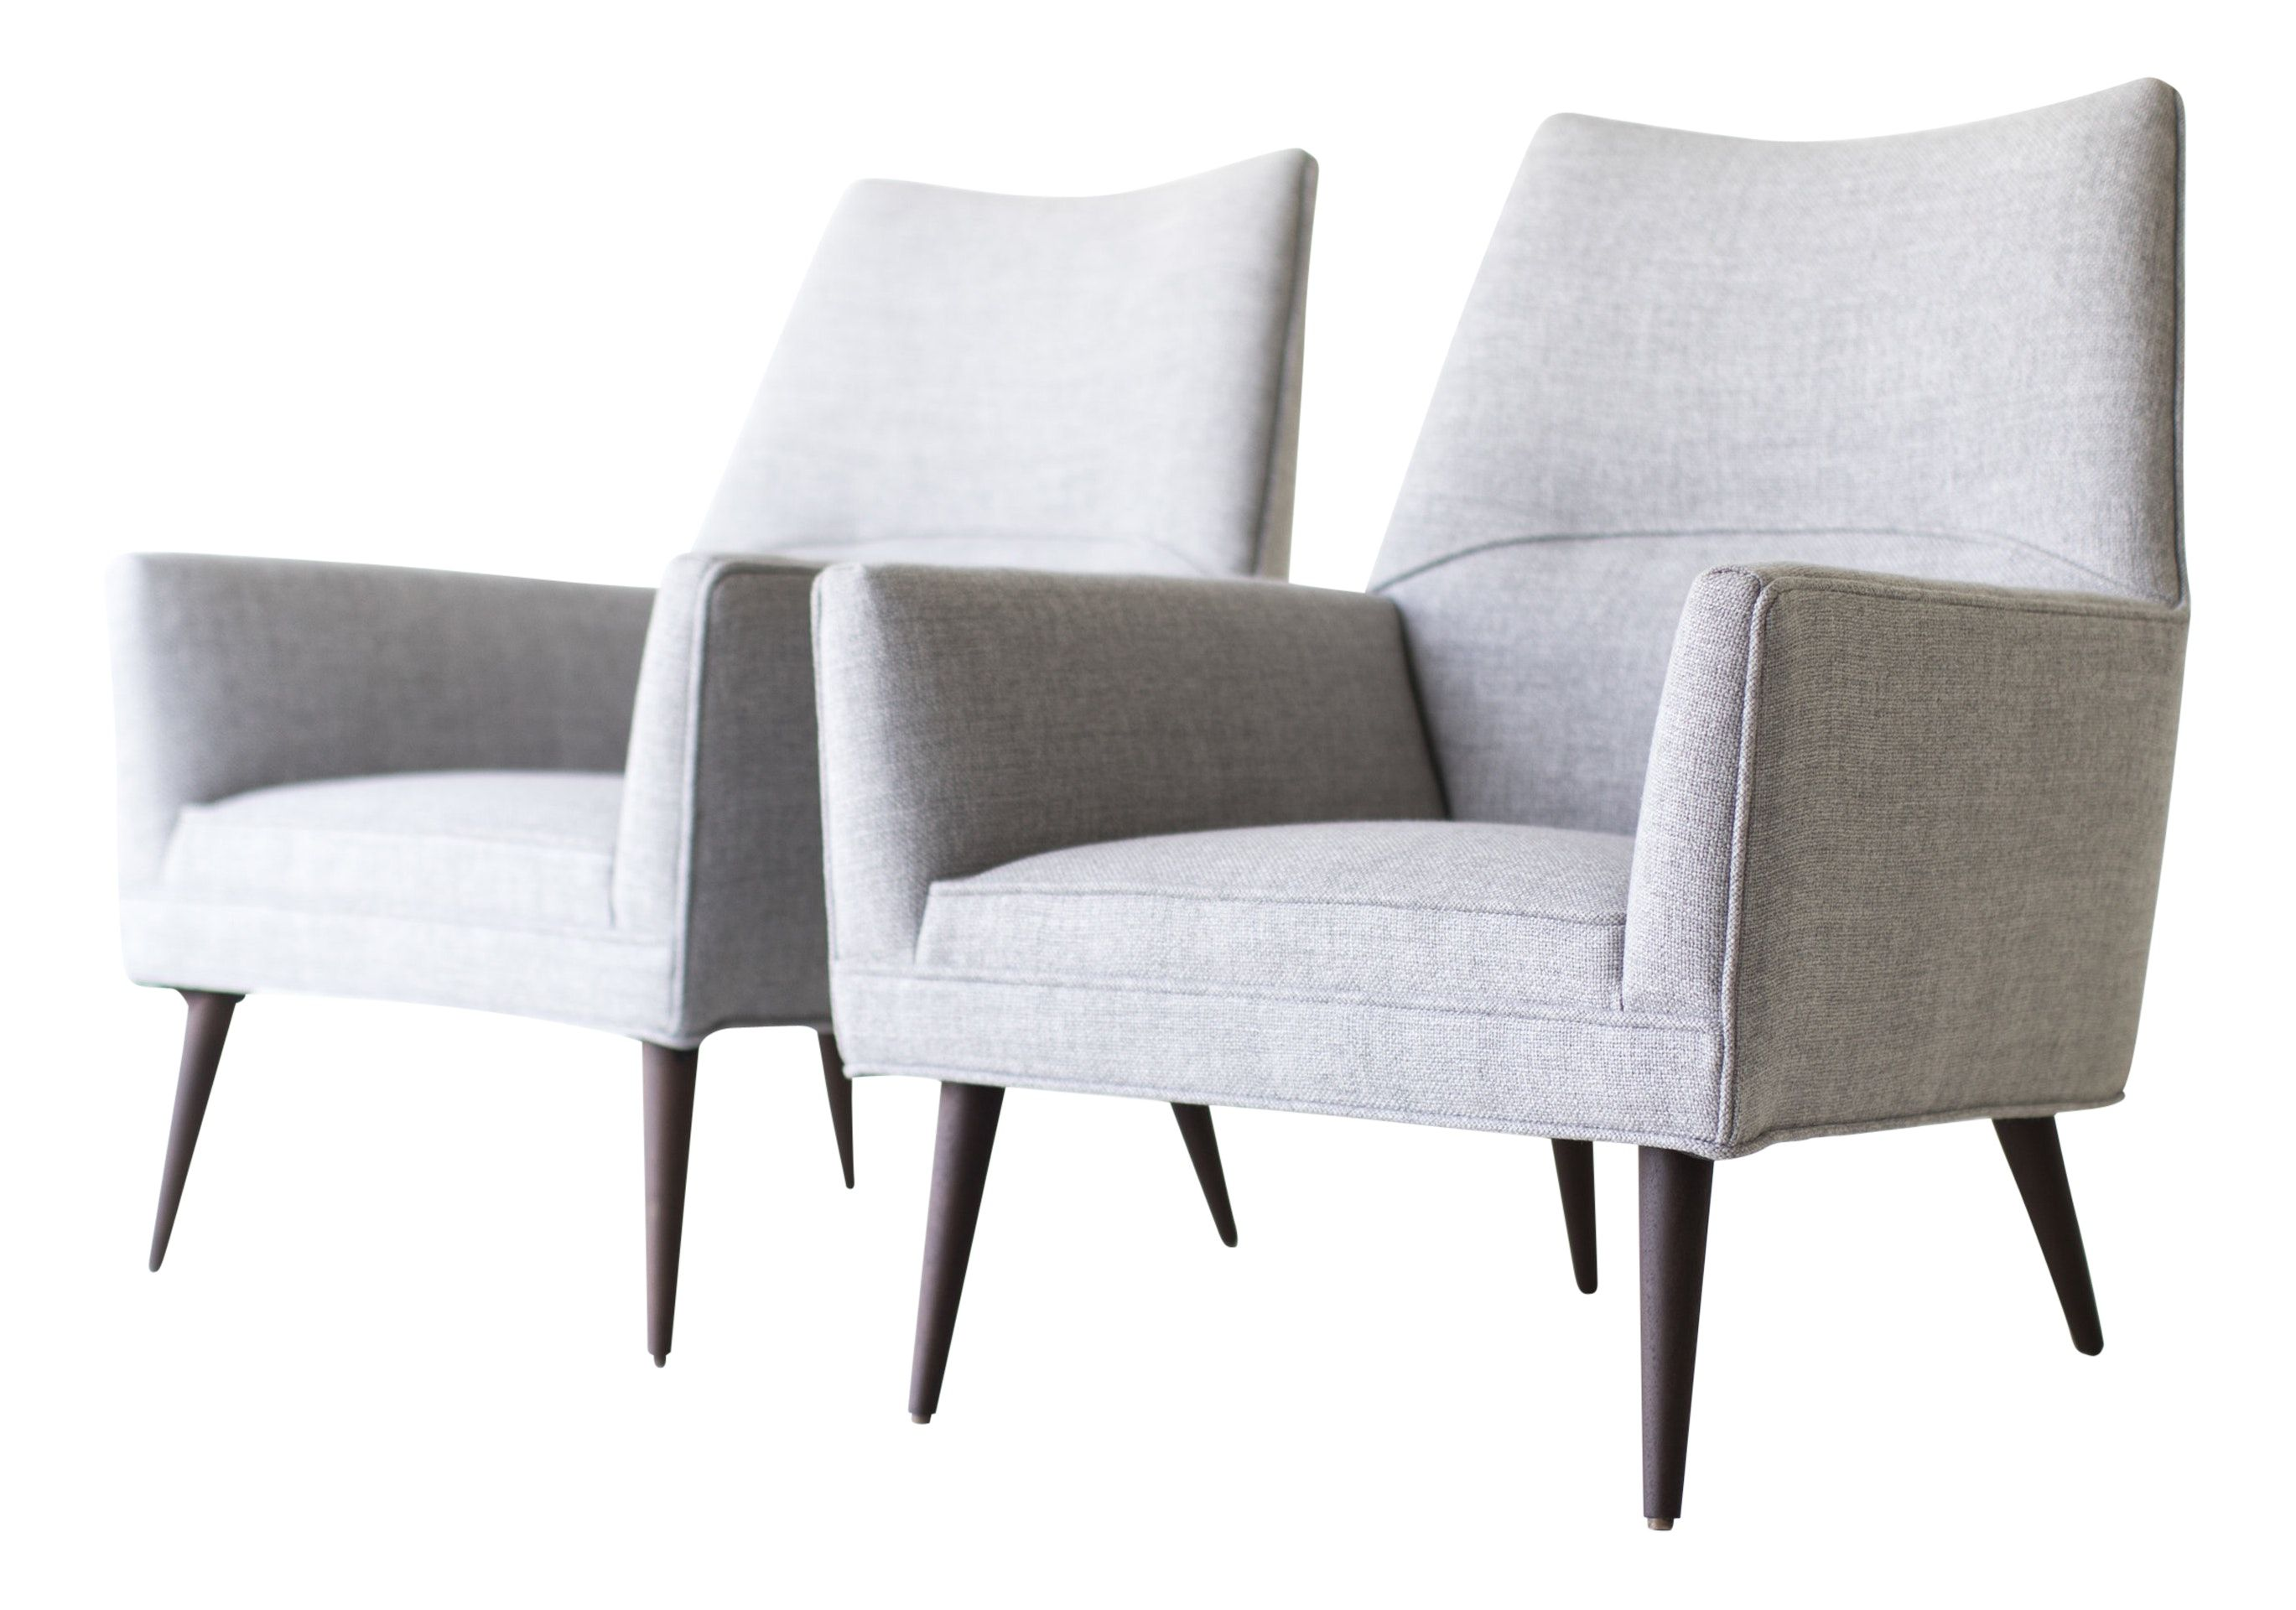 Buy Paul McCobb Squirm Lounge Chairs By The Swanky Abode   Limited Edition  Designer Furniture From